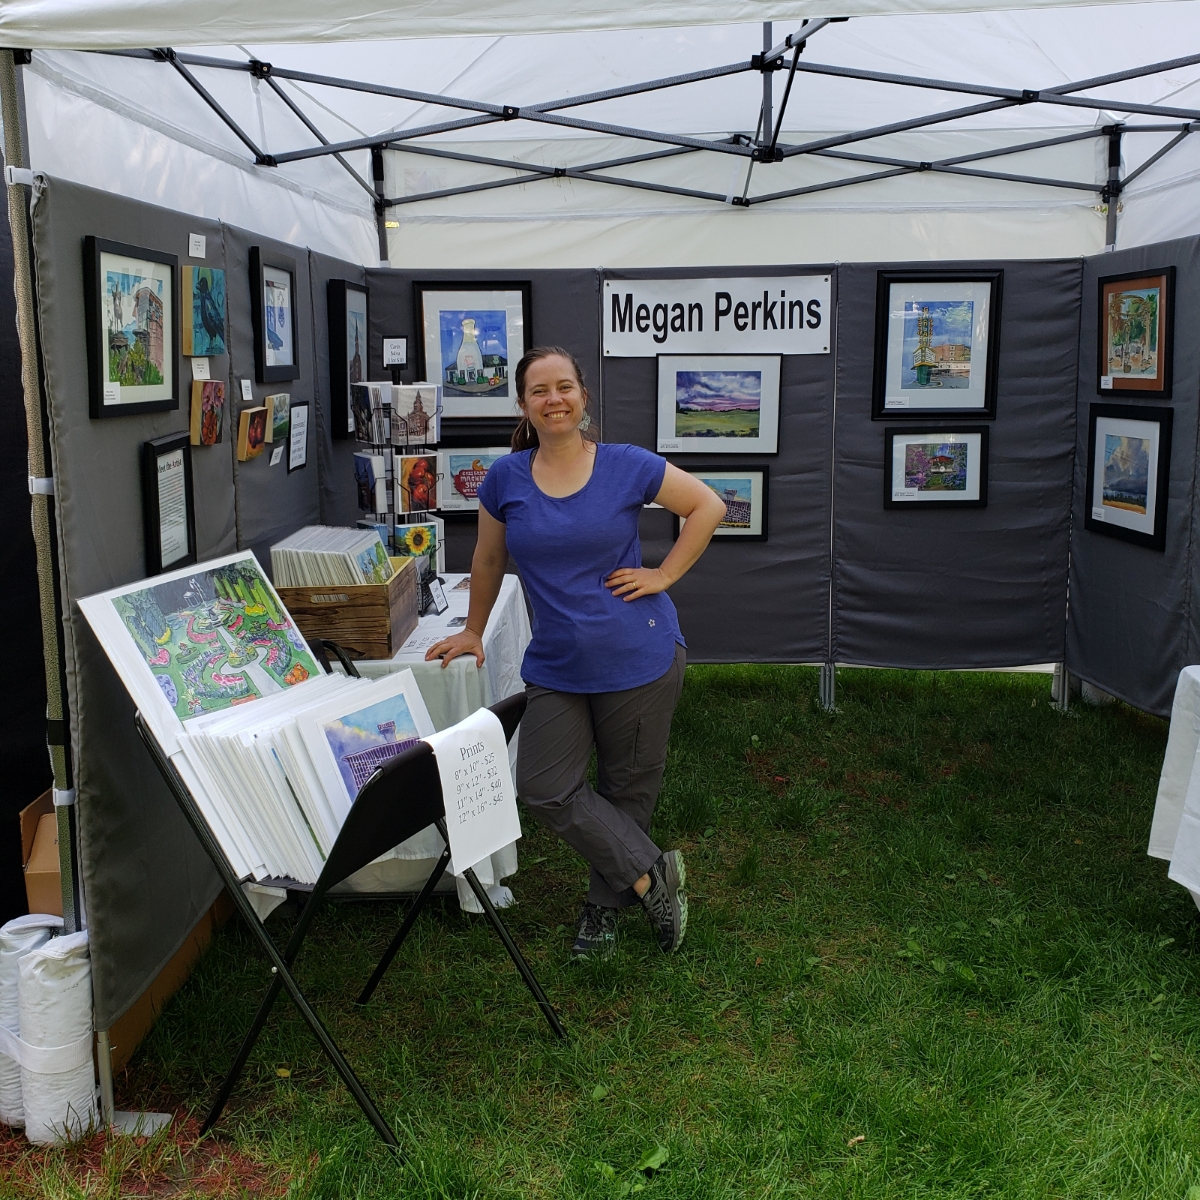 I'll be at Art on Blacktop up at 29th Ave Artworks in my fancy new white tent June 21st-23rd! I'd love to see you!  And thanks to everyone who came out to see me at Artfest this past week. I really appreciate it!